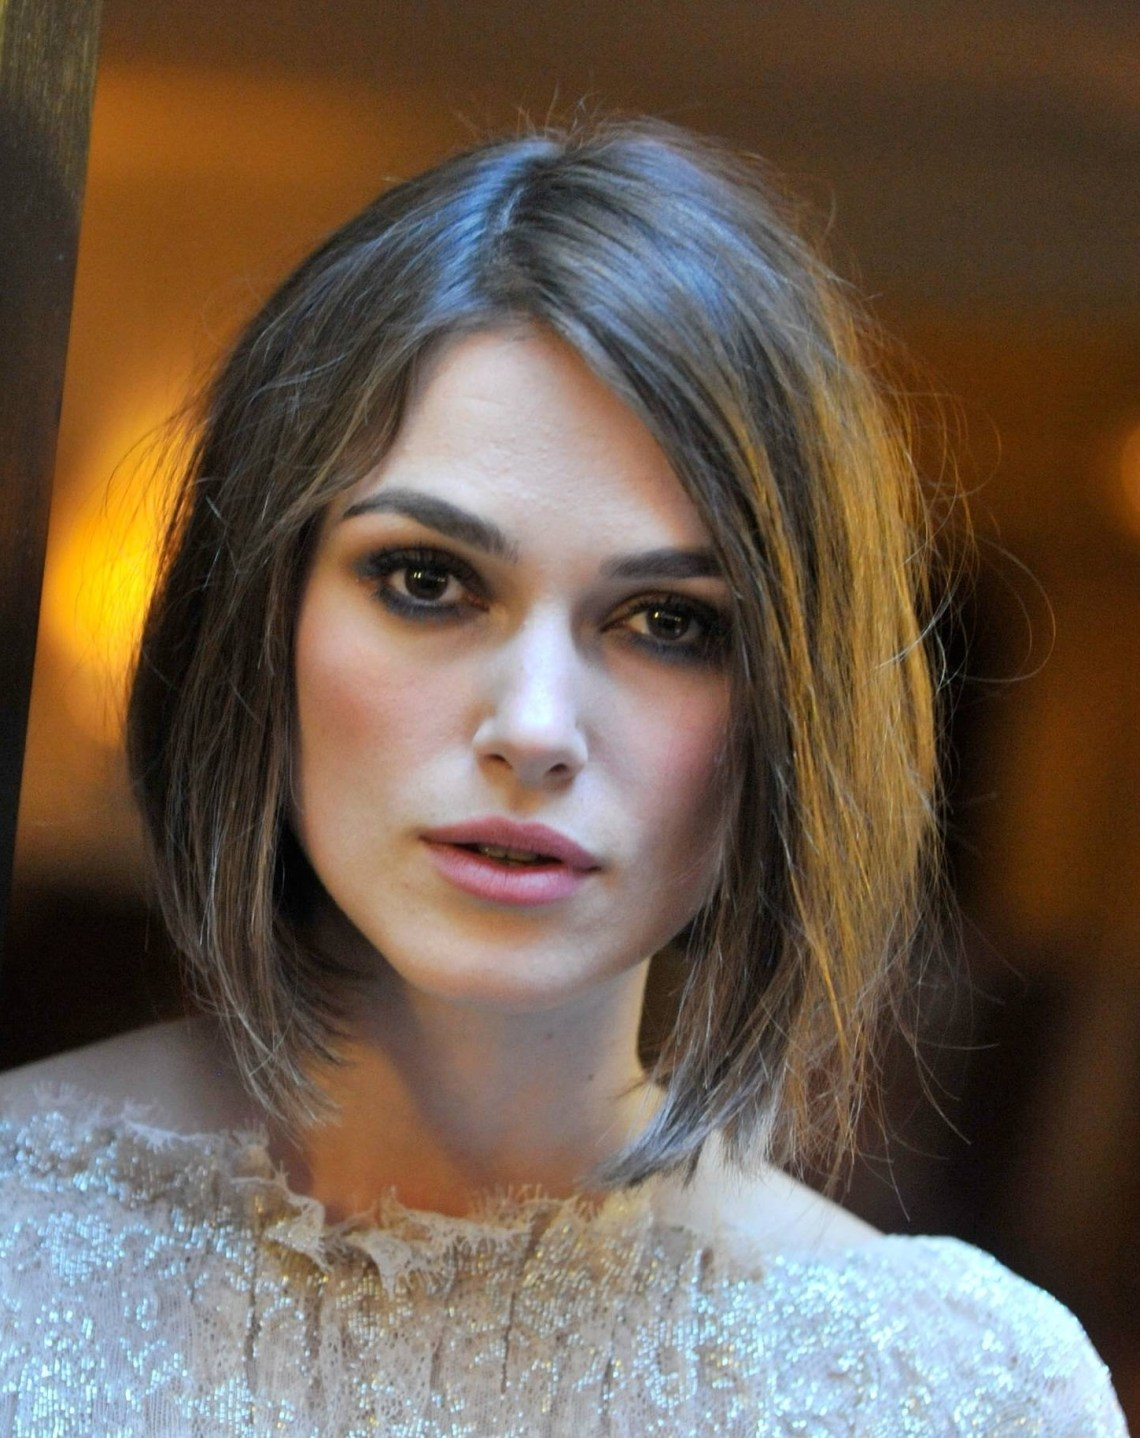 The Best Medium Length Haircuts For A Square Face Women Medium Hairstyles For Square Faces